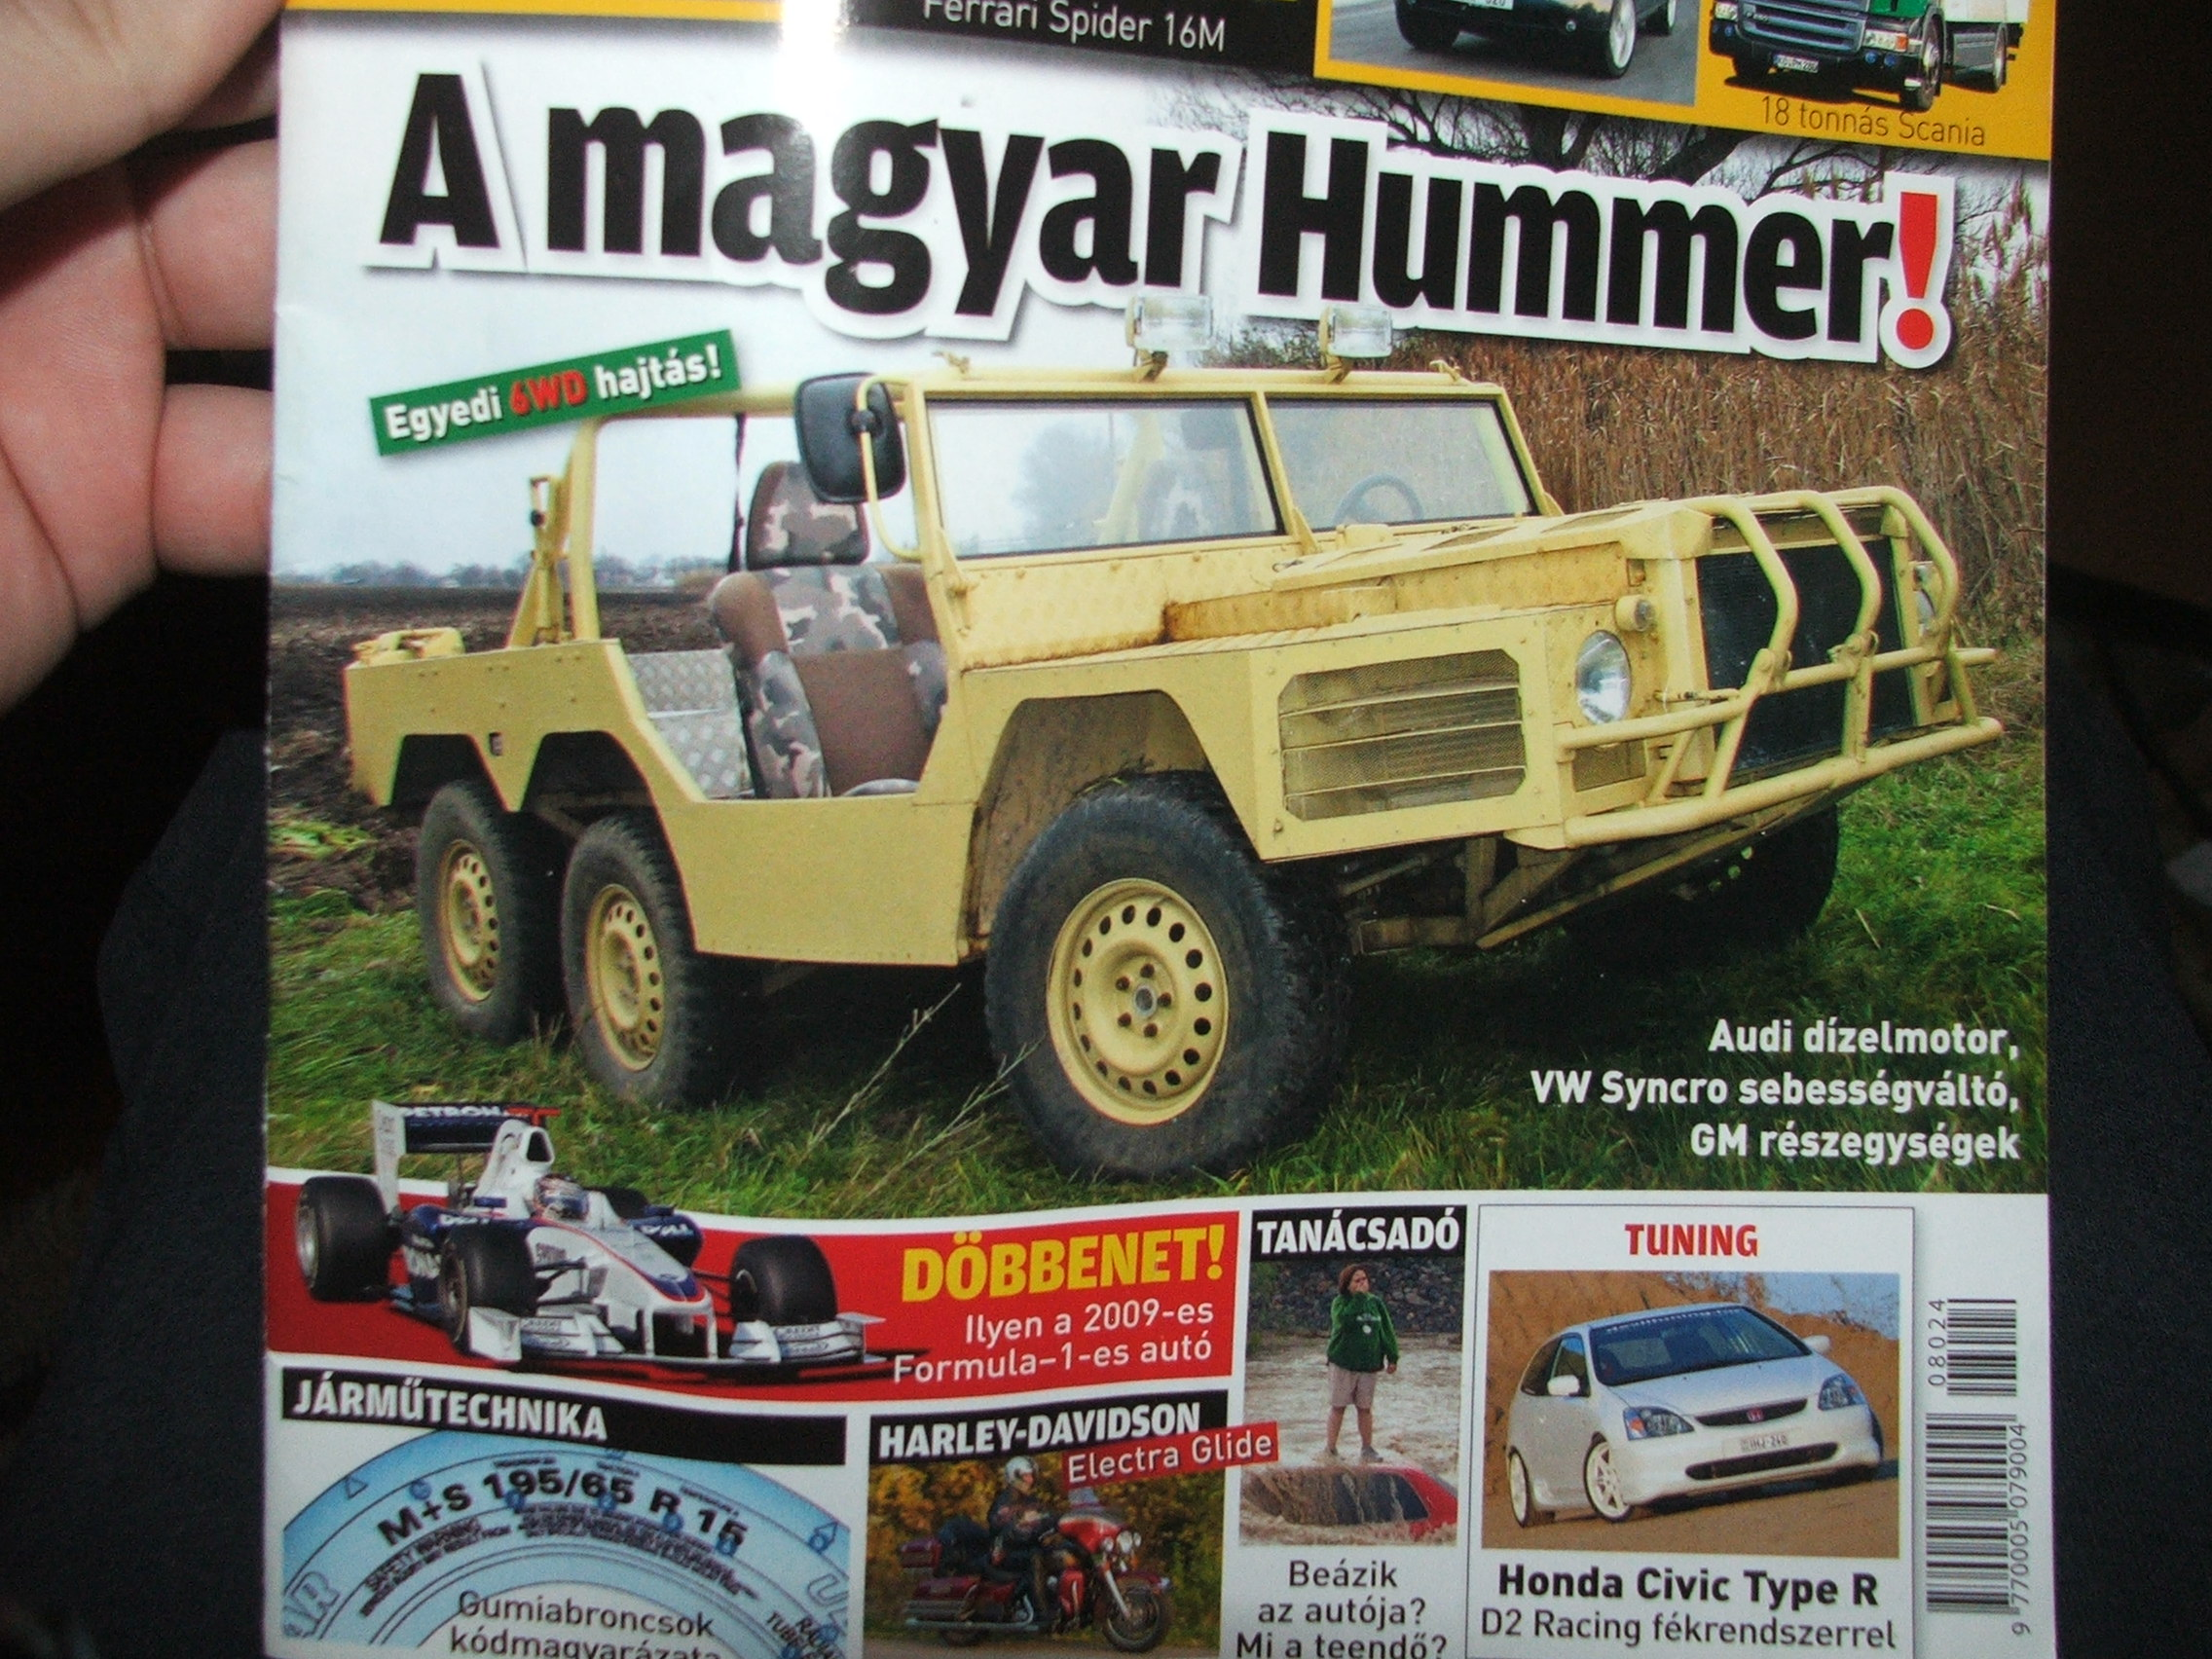 the_hungarian_lego_hummer_022.jpg